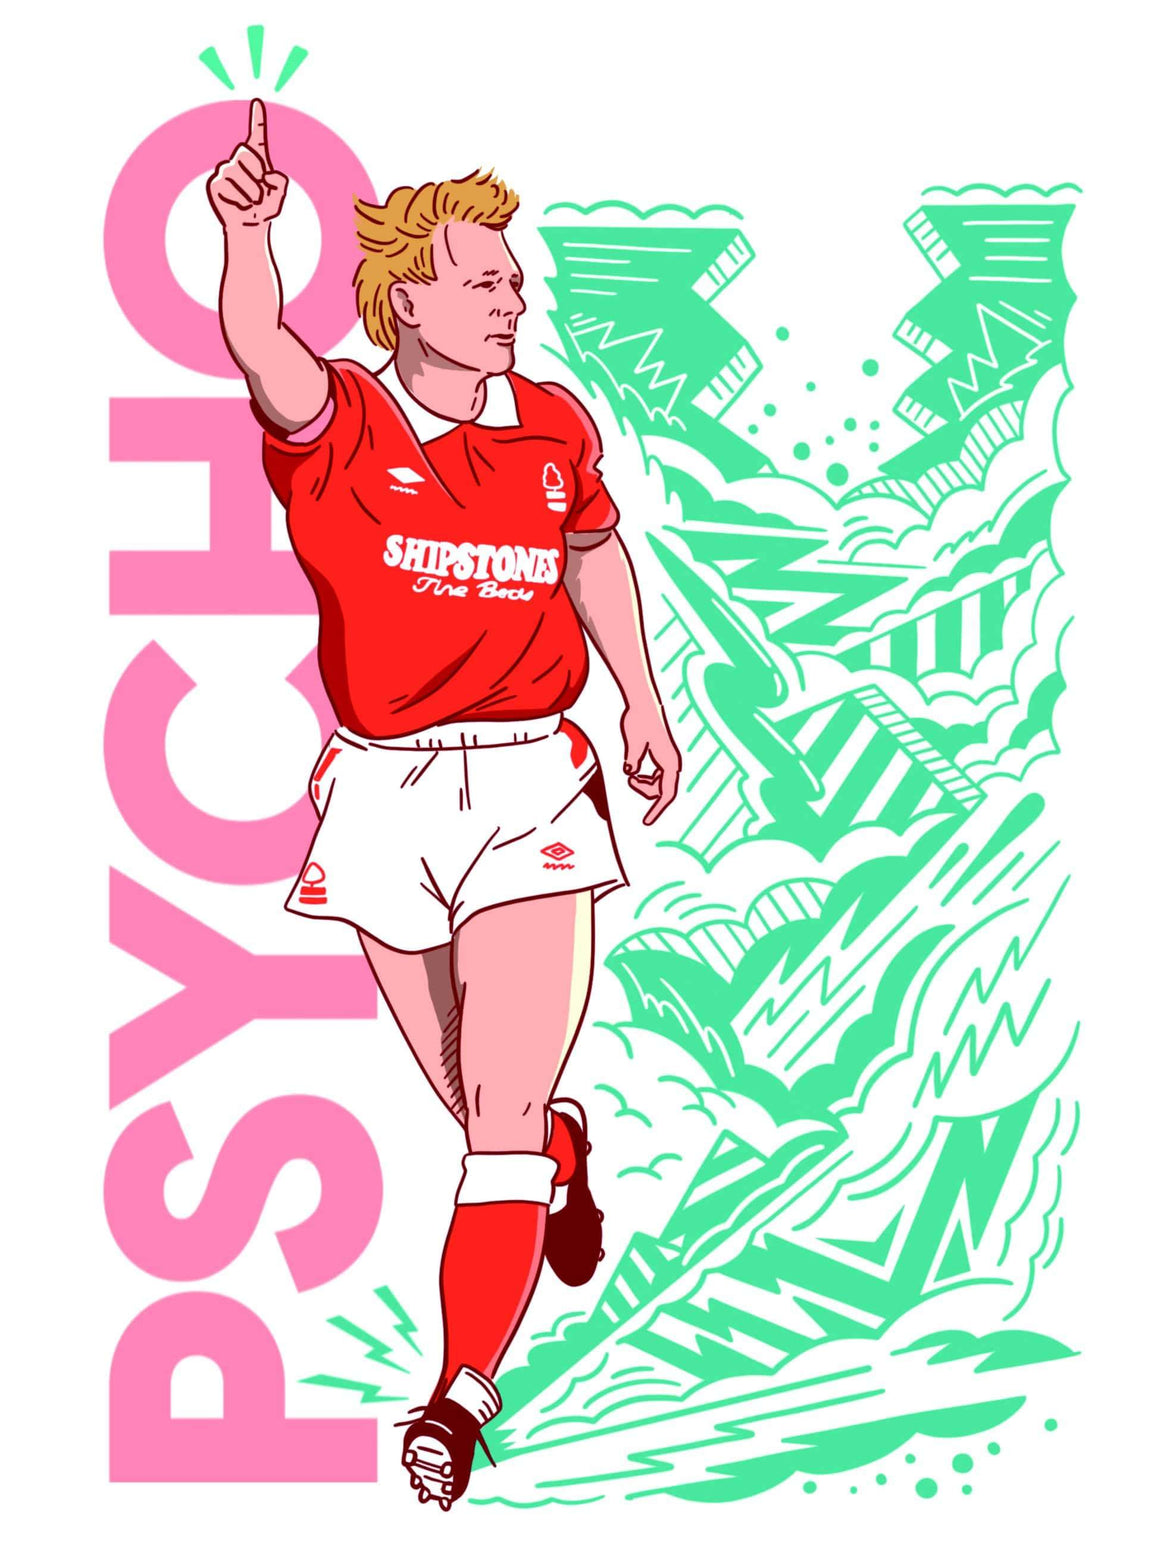 Stuart Pearce x Nottingham Forest A3 print - Football Shirt Collective